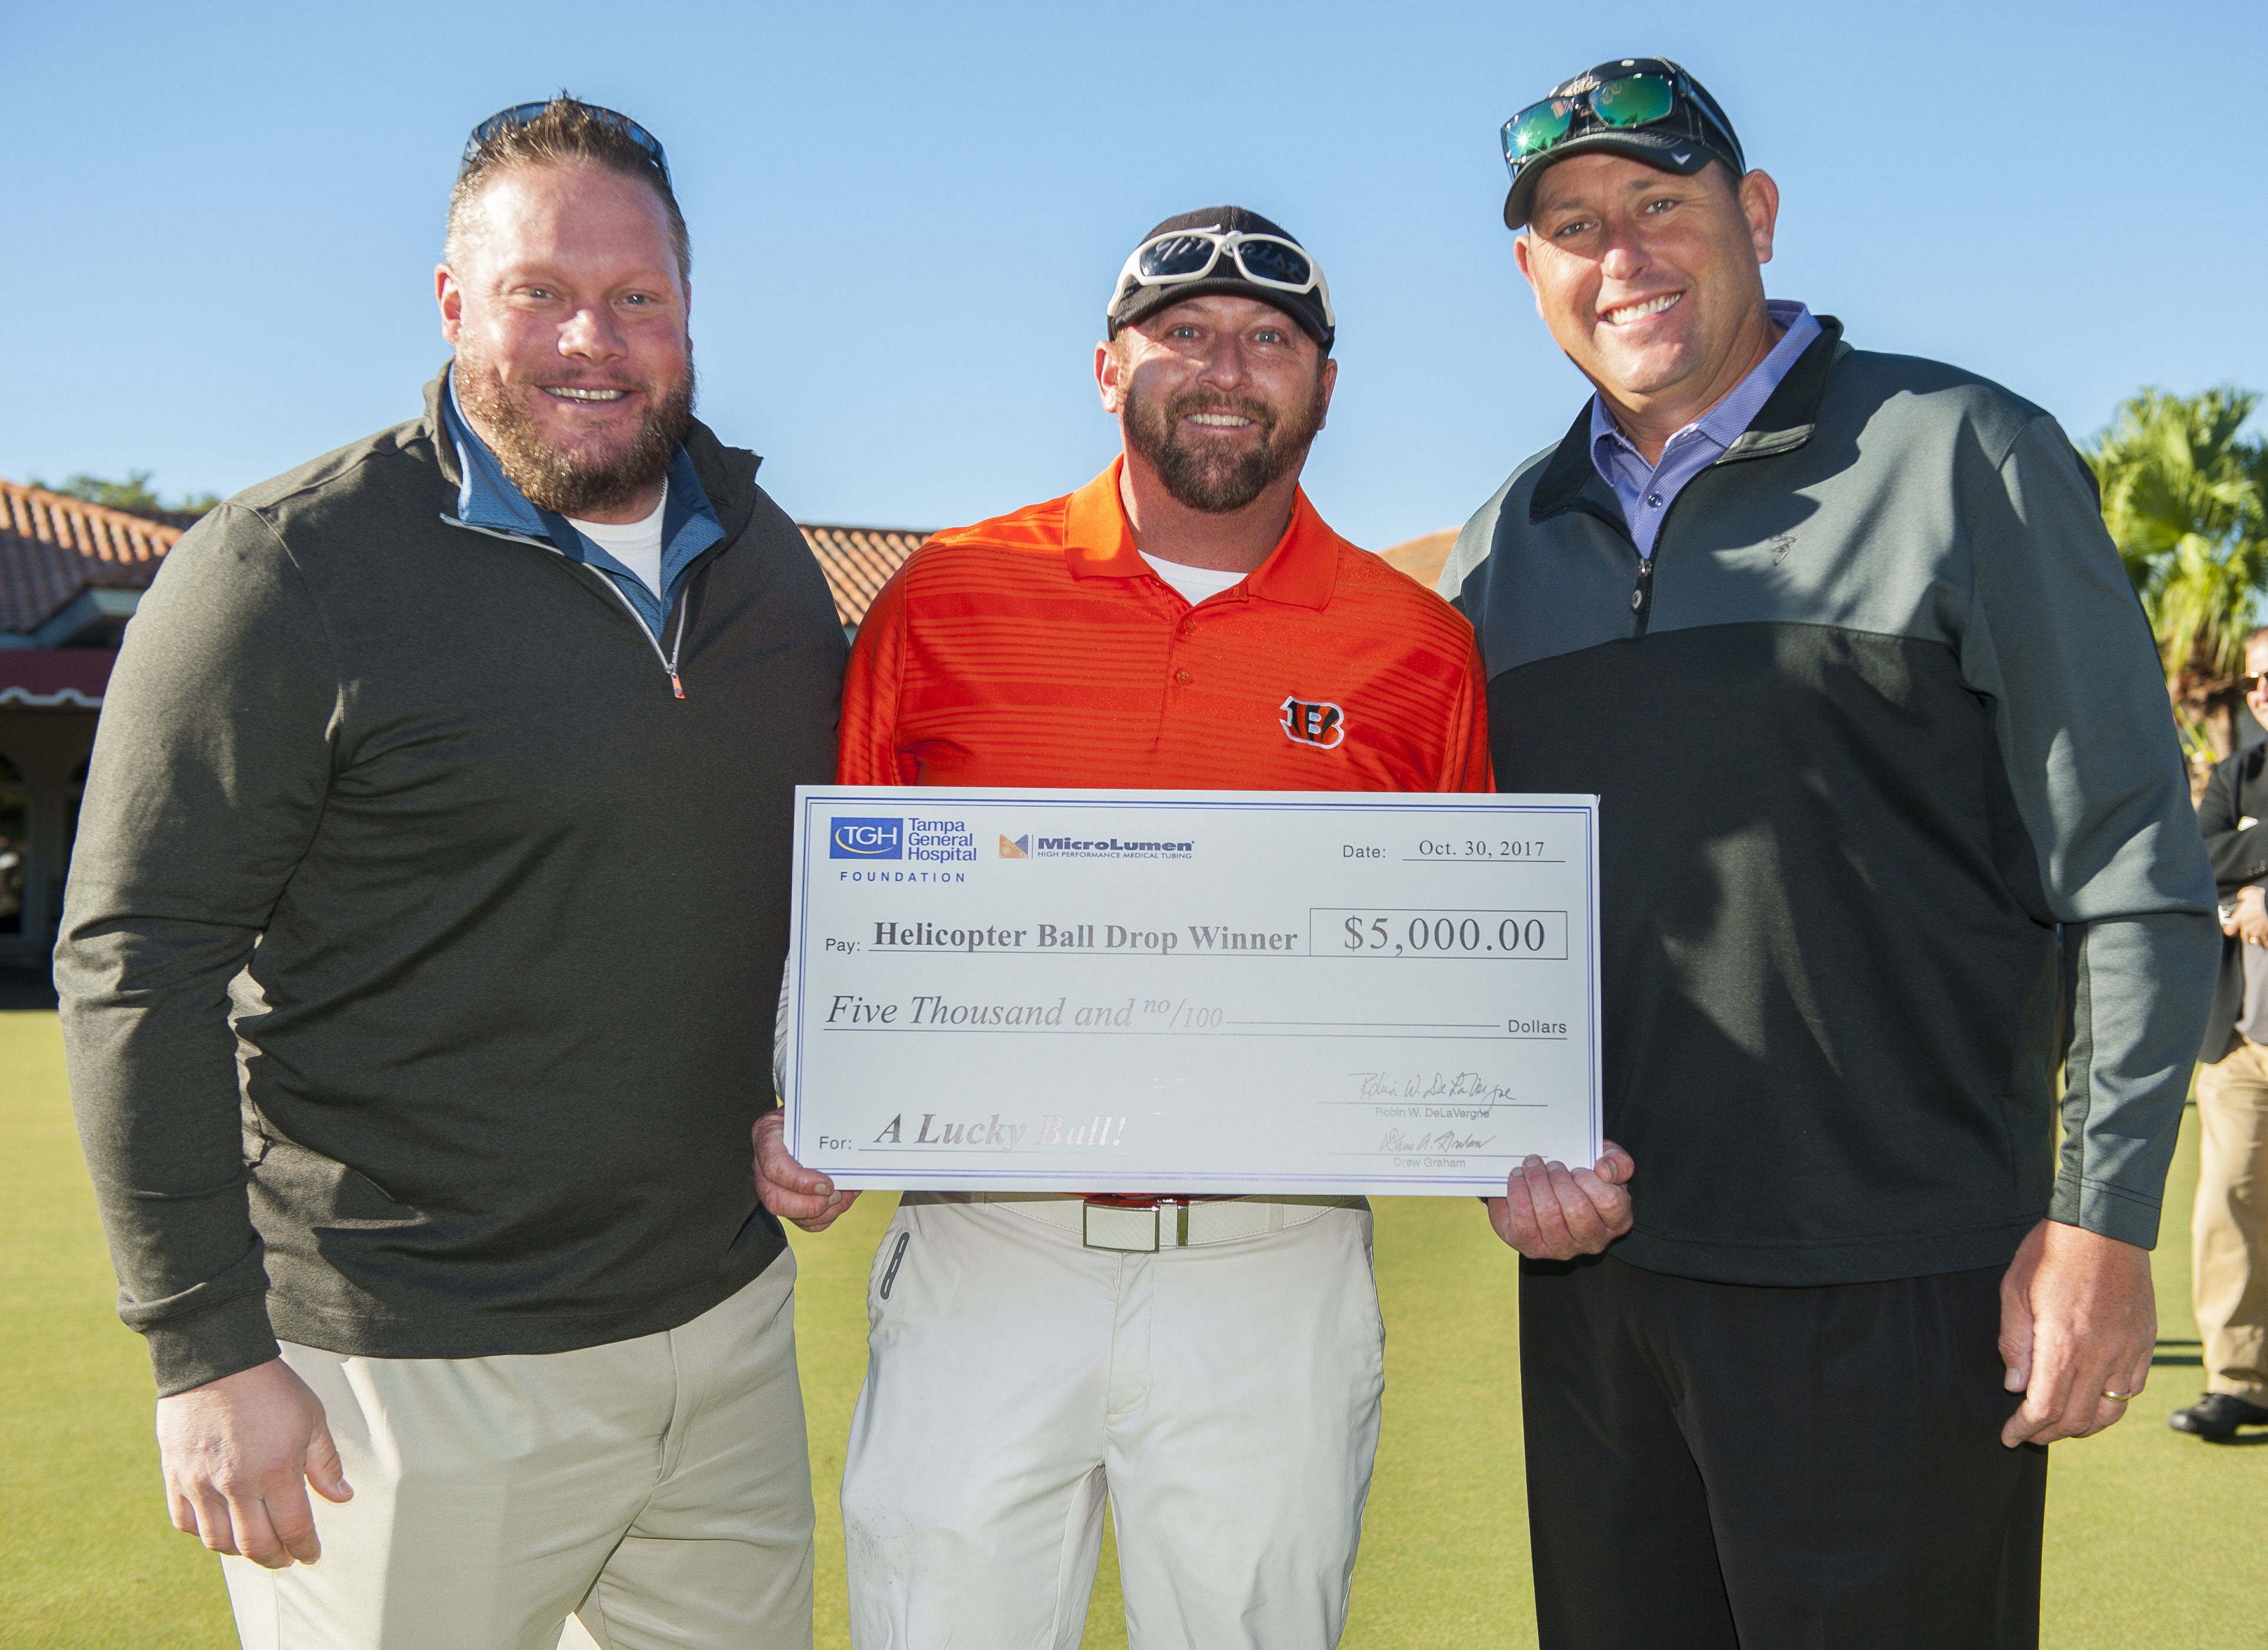 Helicopter Ball Drop winner, Jason Rabold, with golf tournament co-chairs, Brandon Day and Danny Jackson.